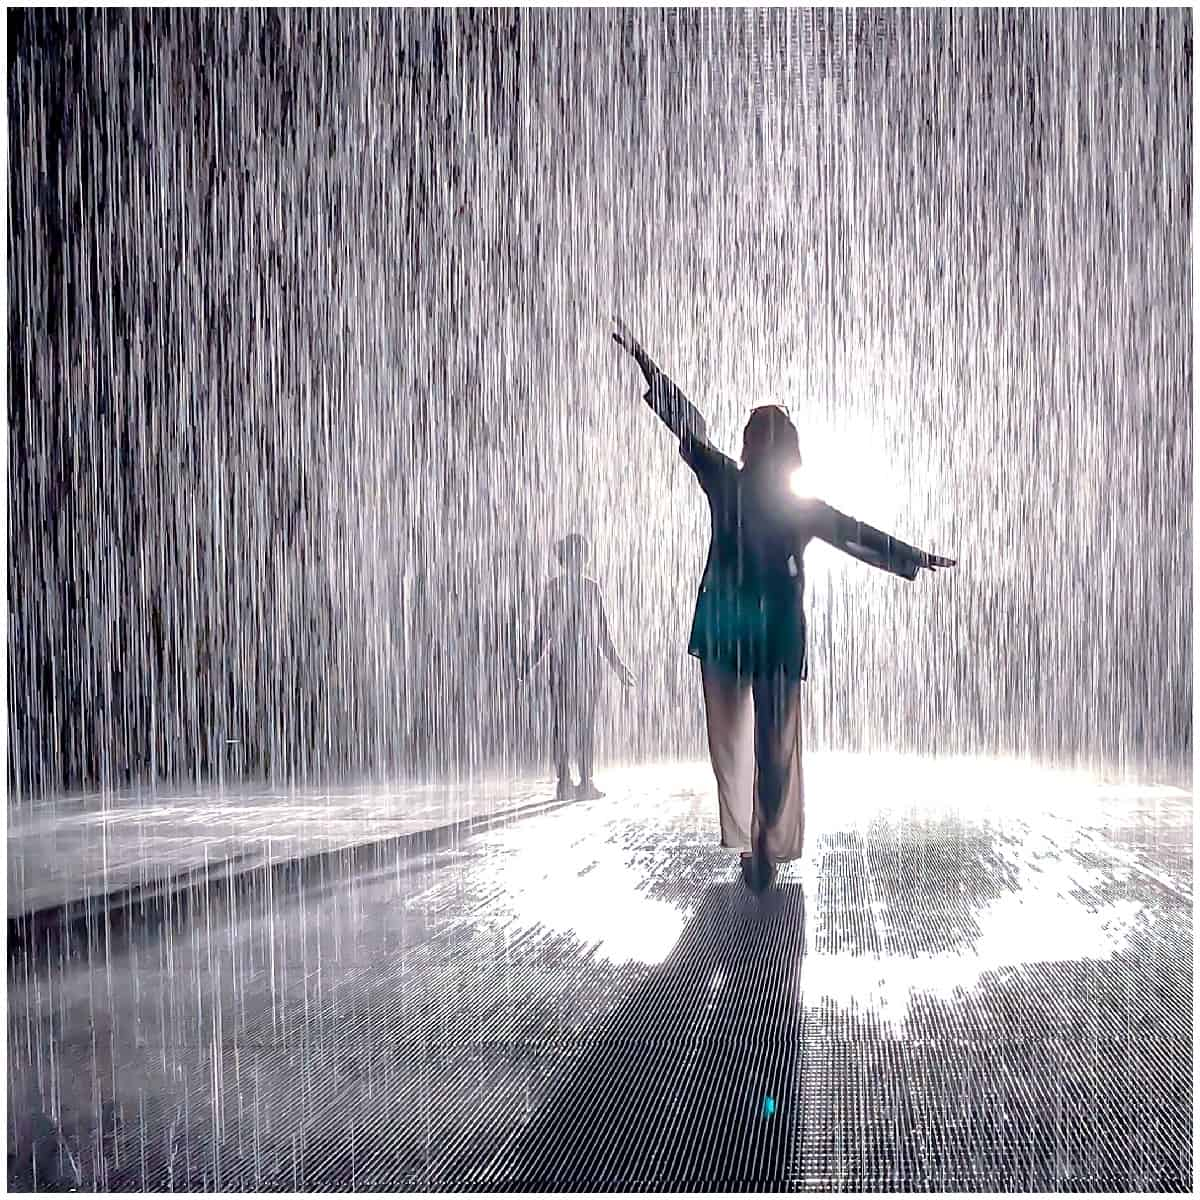 Rain room Sharjah - Abigail King